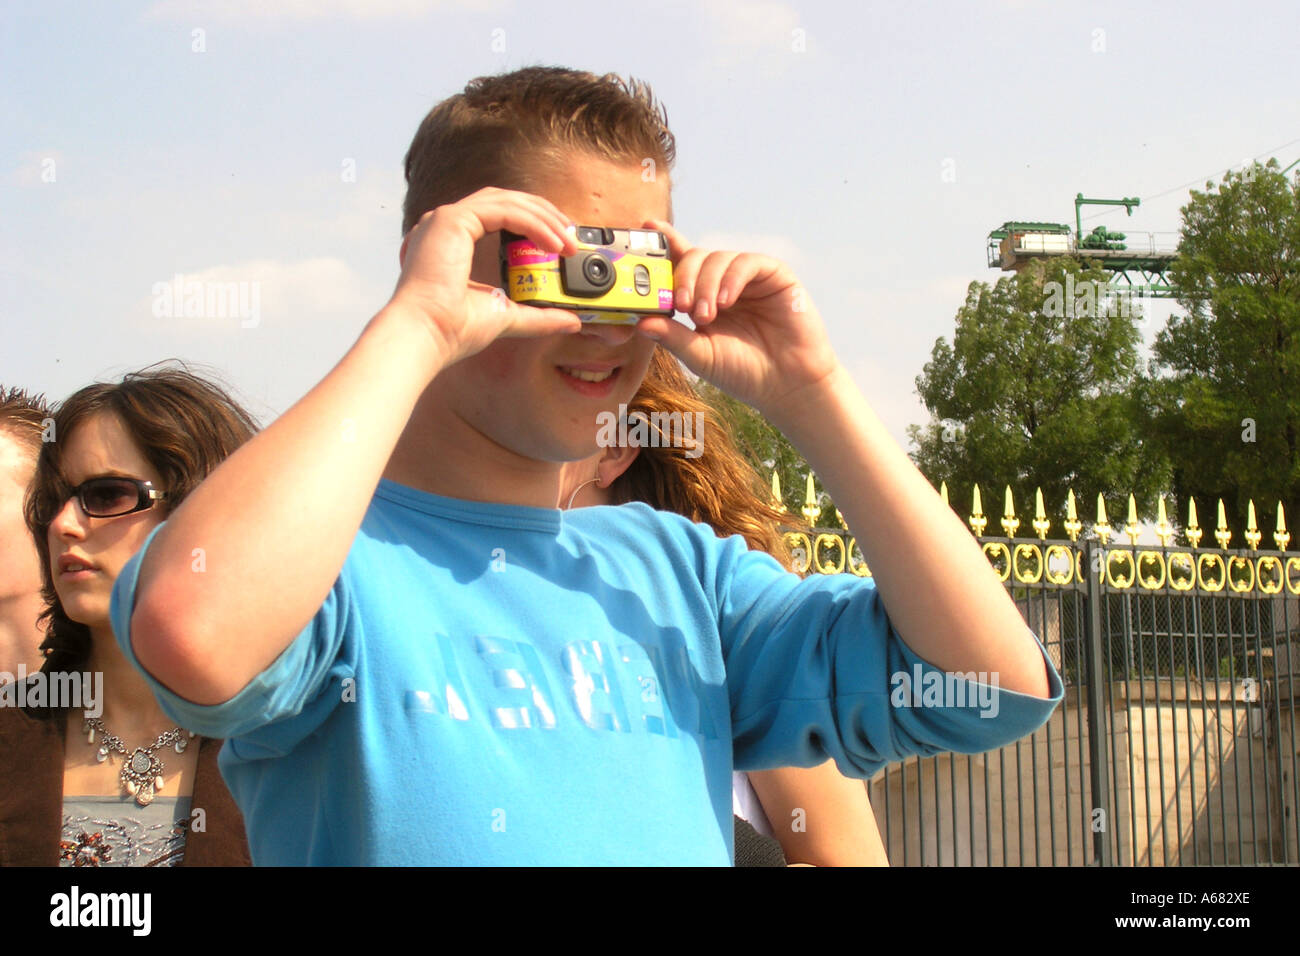 adolescent boy taking snapshot with SUC in Paris France Stock Photo